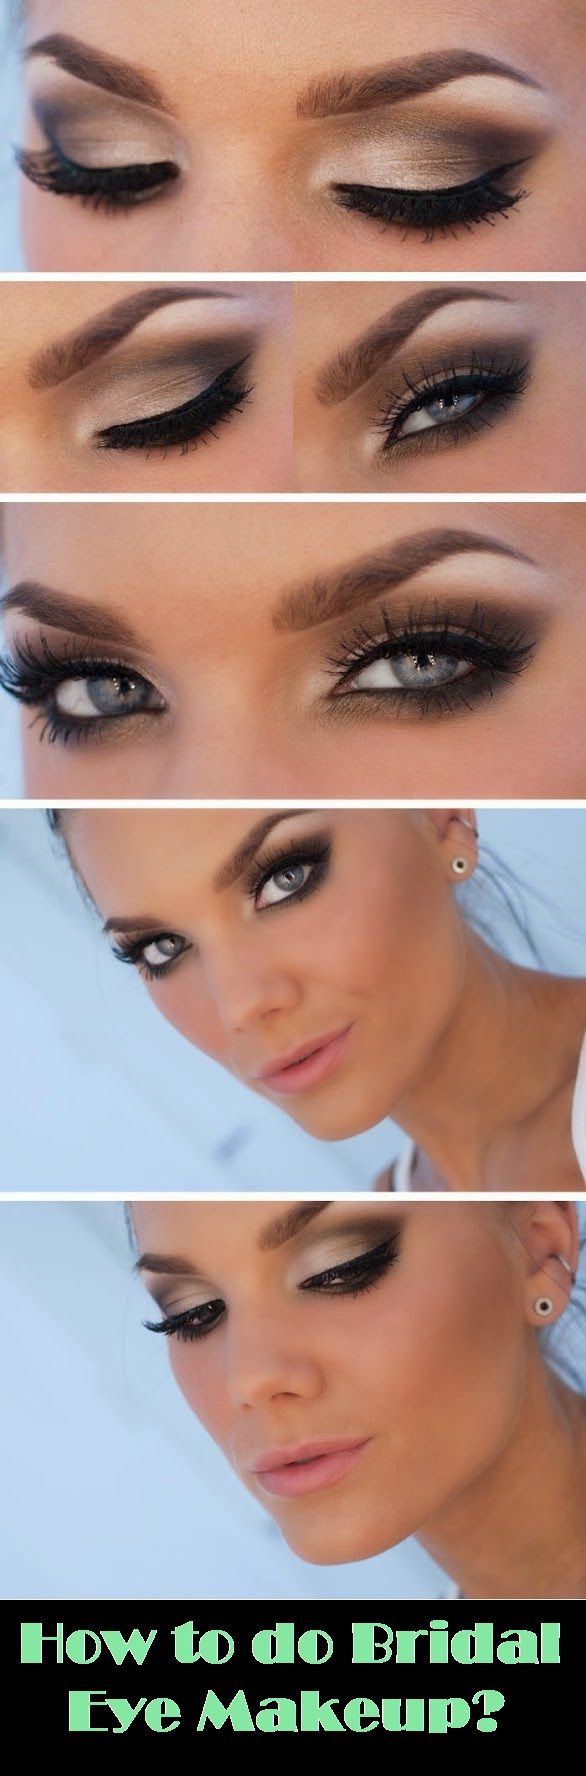 How to do Bridal Eye Makeup? (If you want a smokey eye- can do similar but with lighter shades)